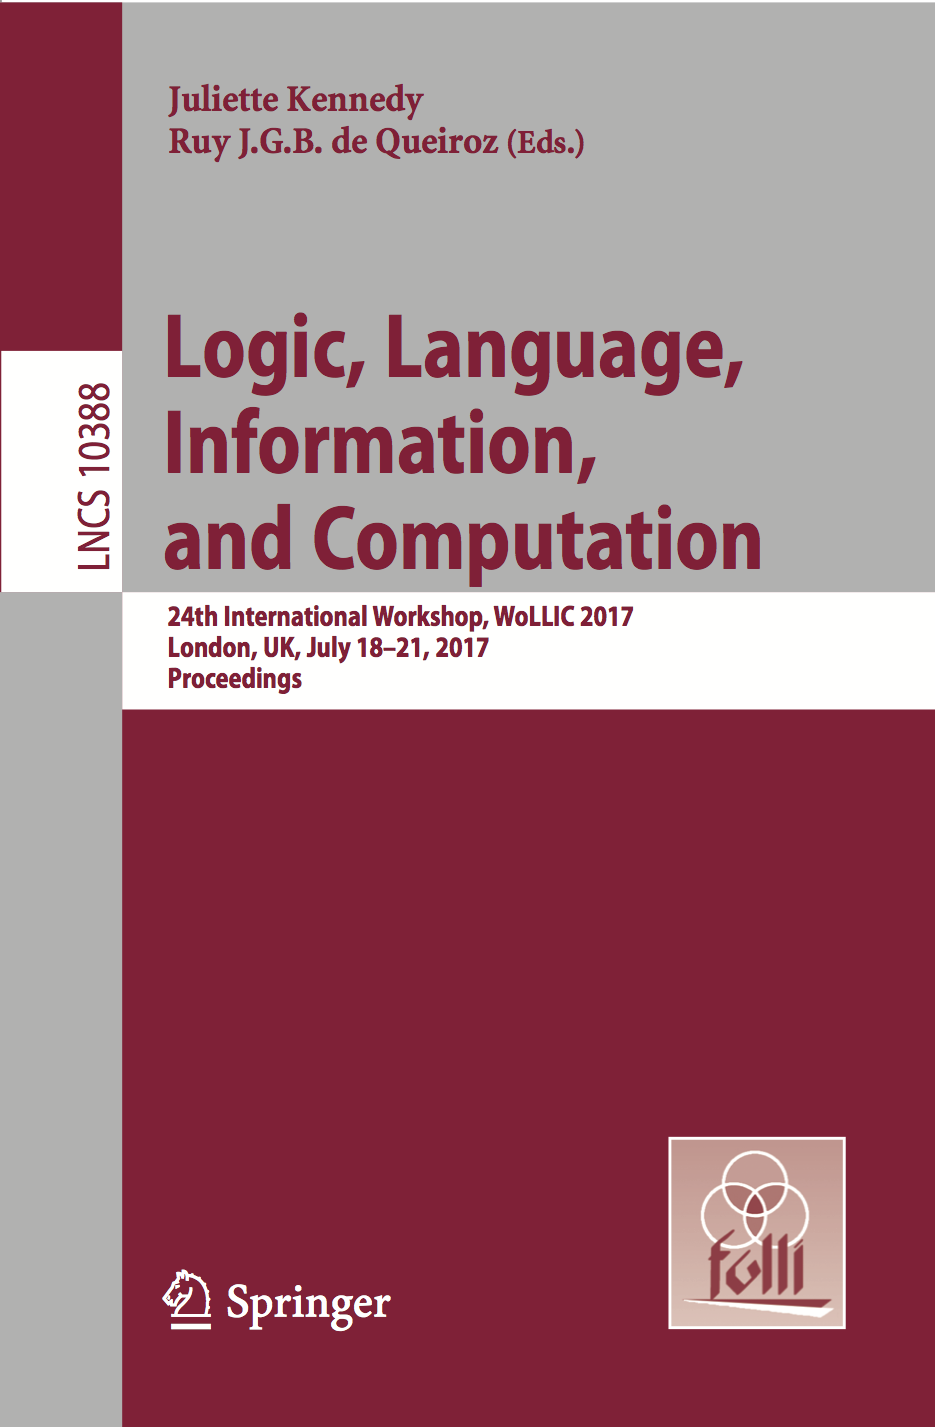 LNCS Proceedings of WoLLIC 2017 (Vol. 10388)